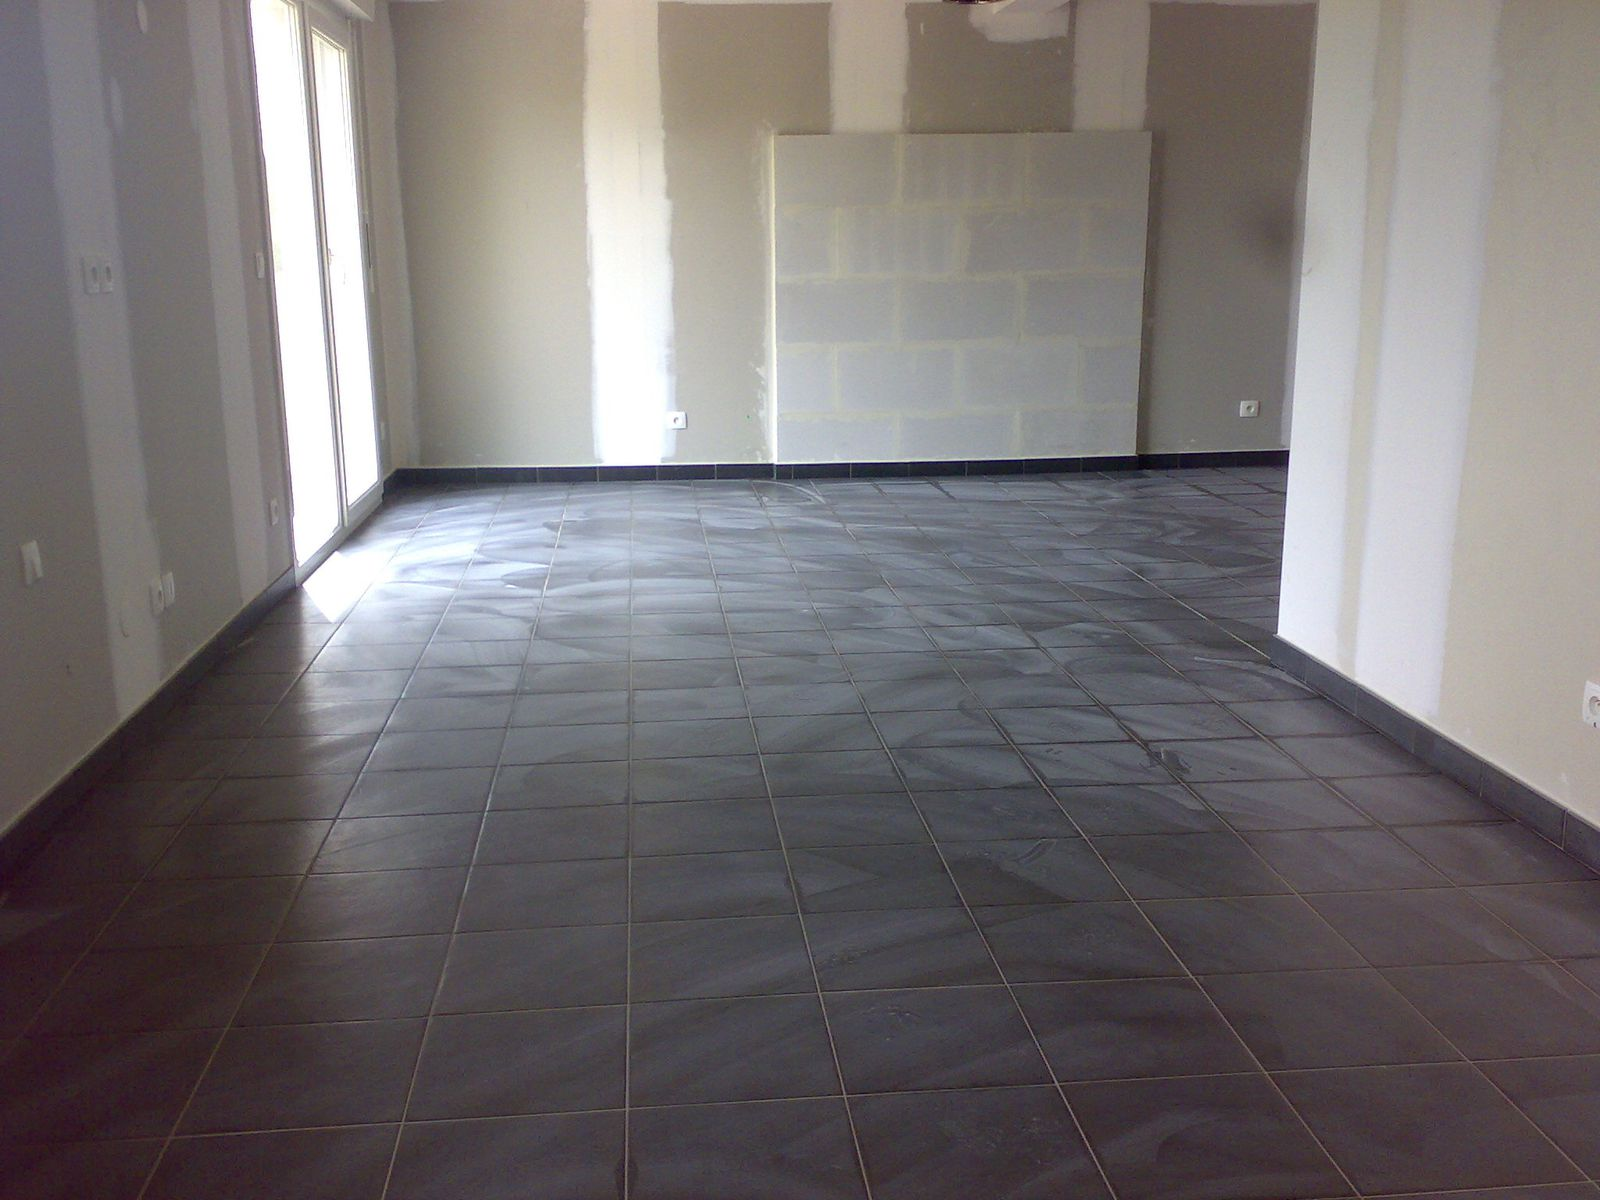 Carrelage termin construction maison batig re for Carreler sur du carrelage